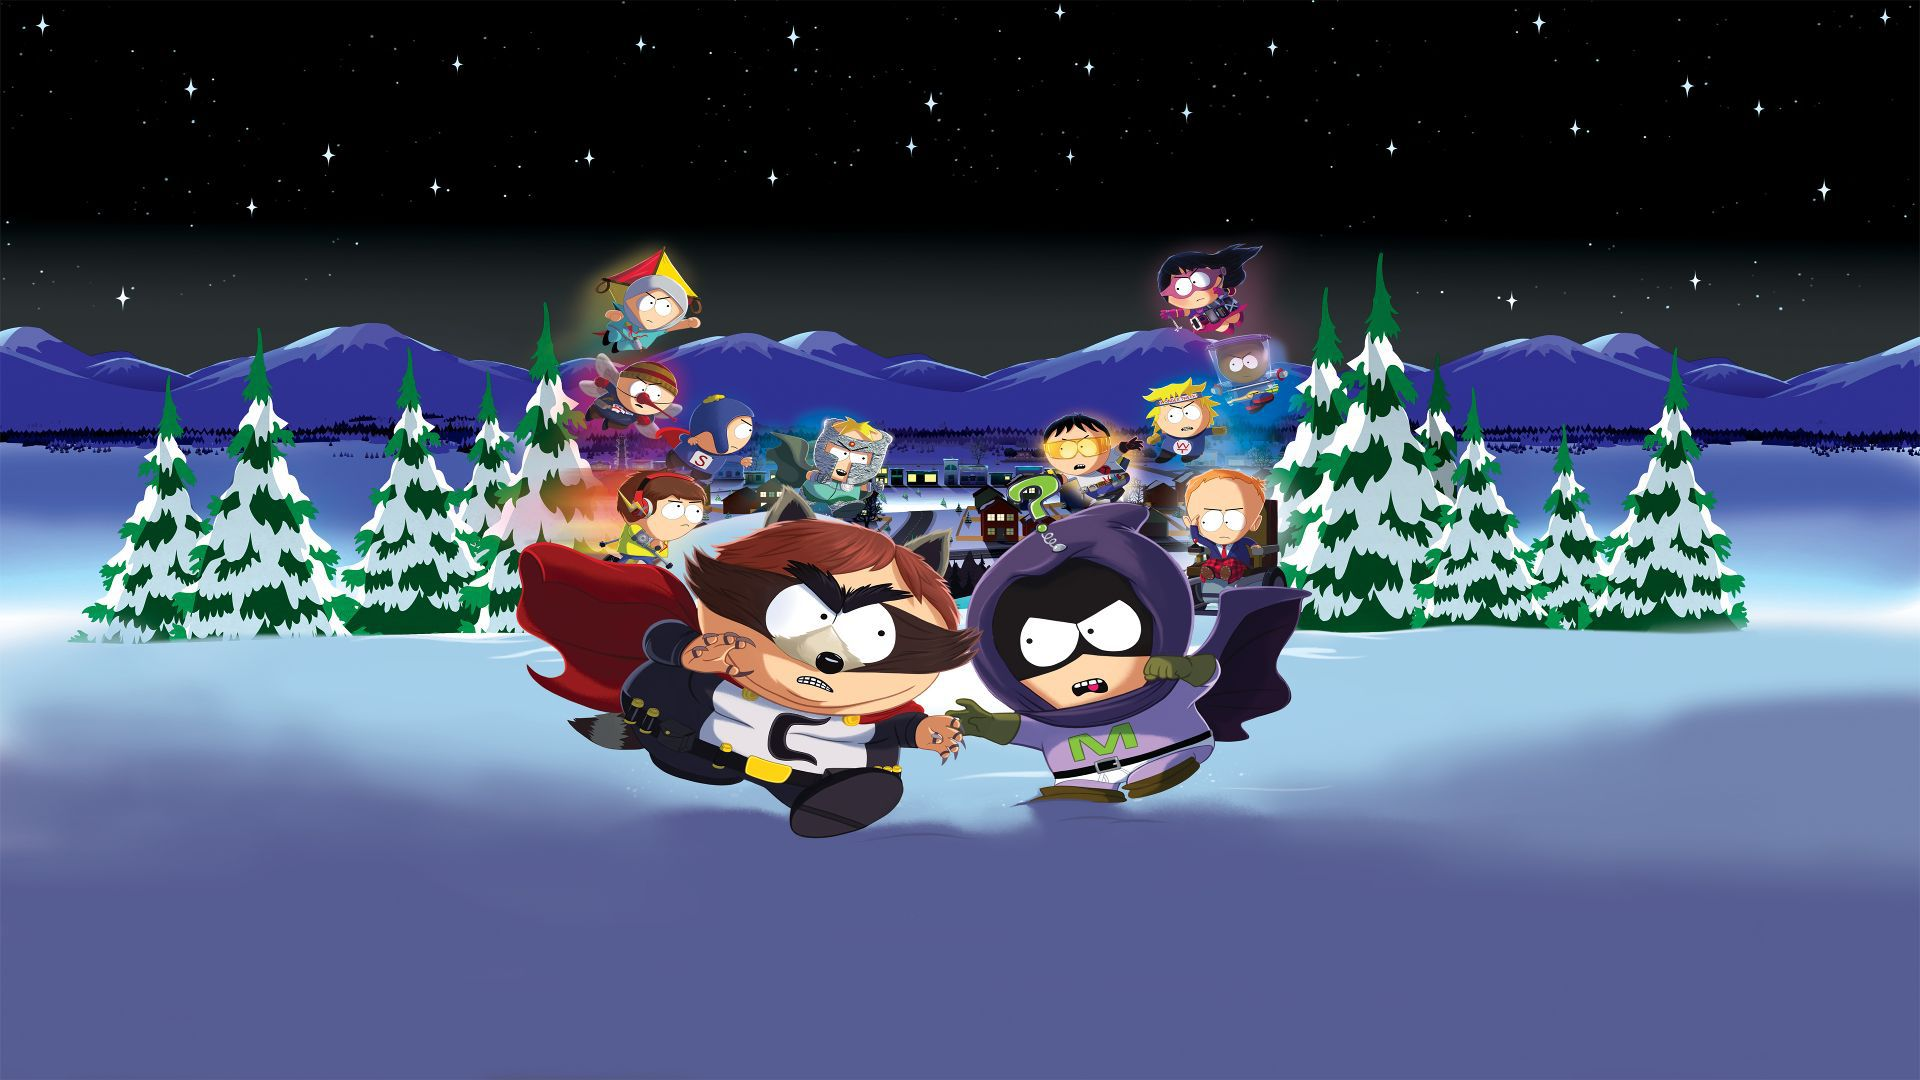 South Park The Fractured But Whole HD Wallpaper 15   1920 X 1080 1920x1080